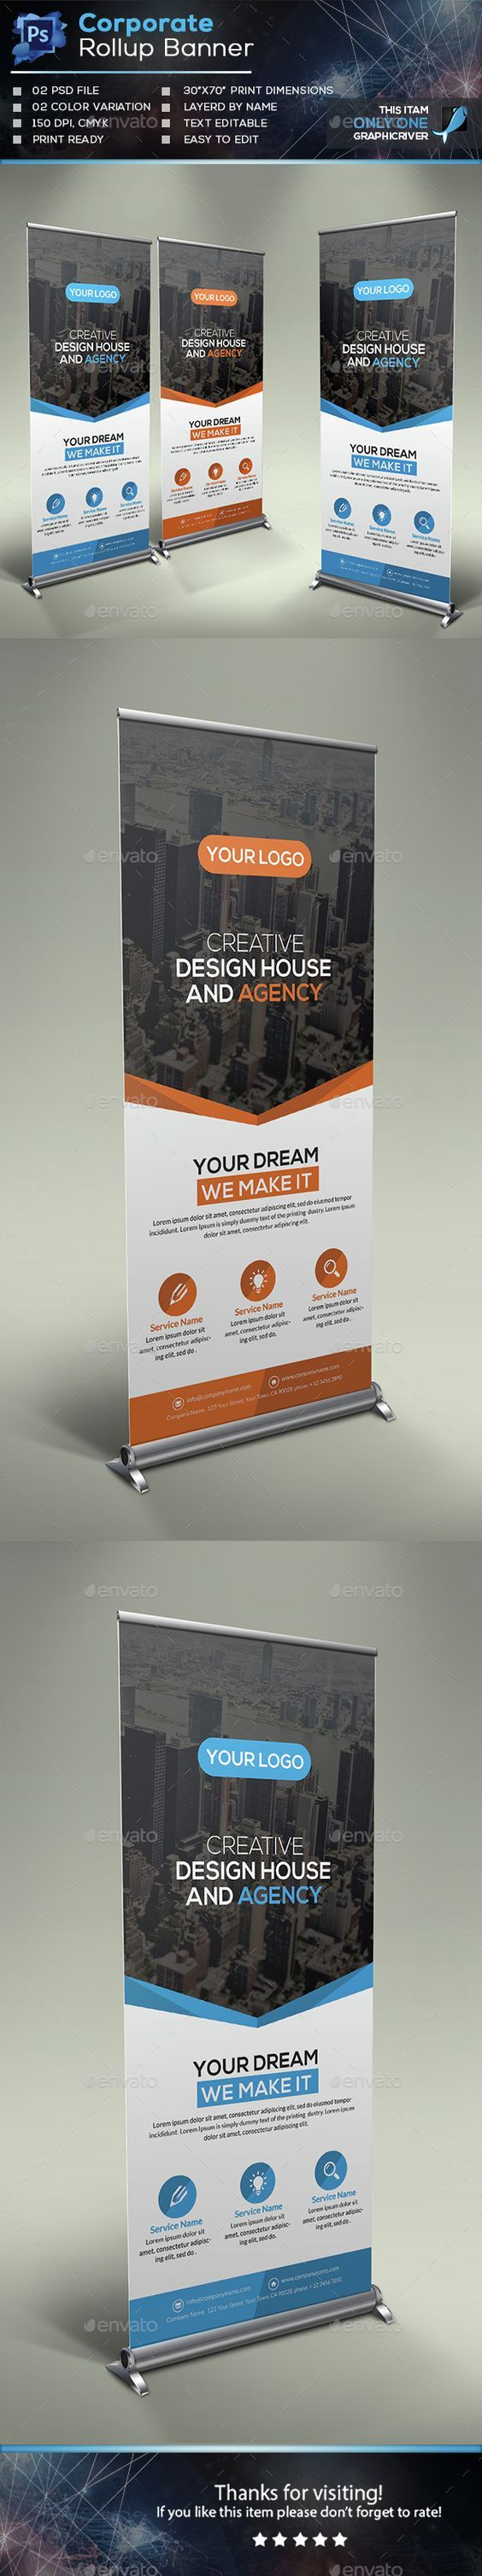 Corporate Roll-up Banner Template PSD. Download here: http://graphicriver.net/item/corporate-rollup-banner/15037761?ref=ksioks: